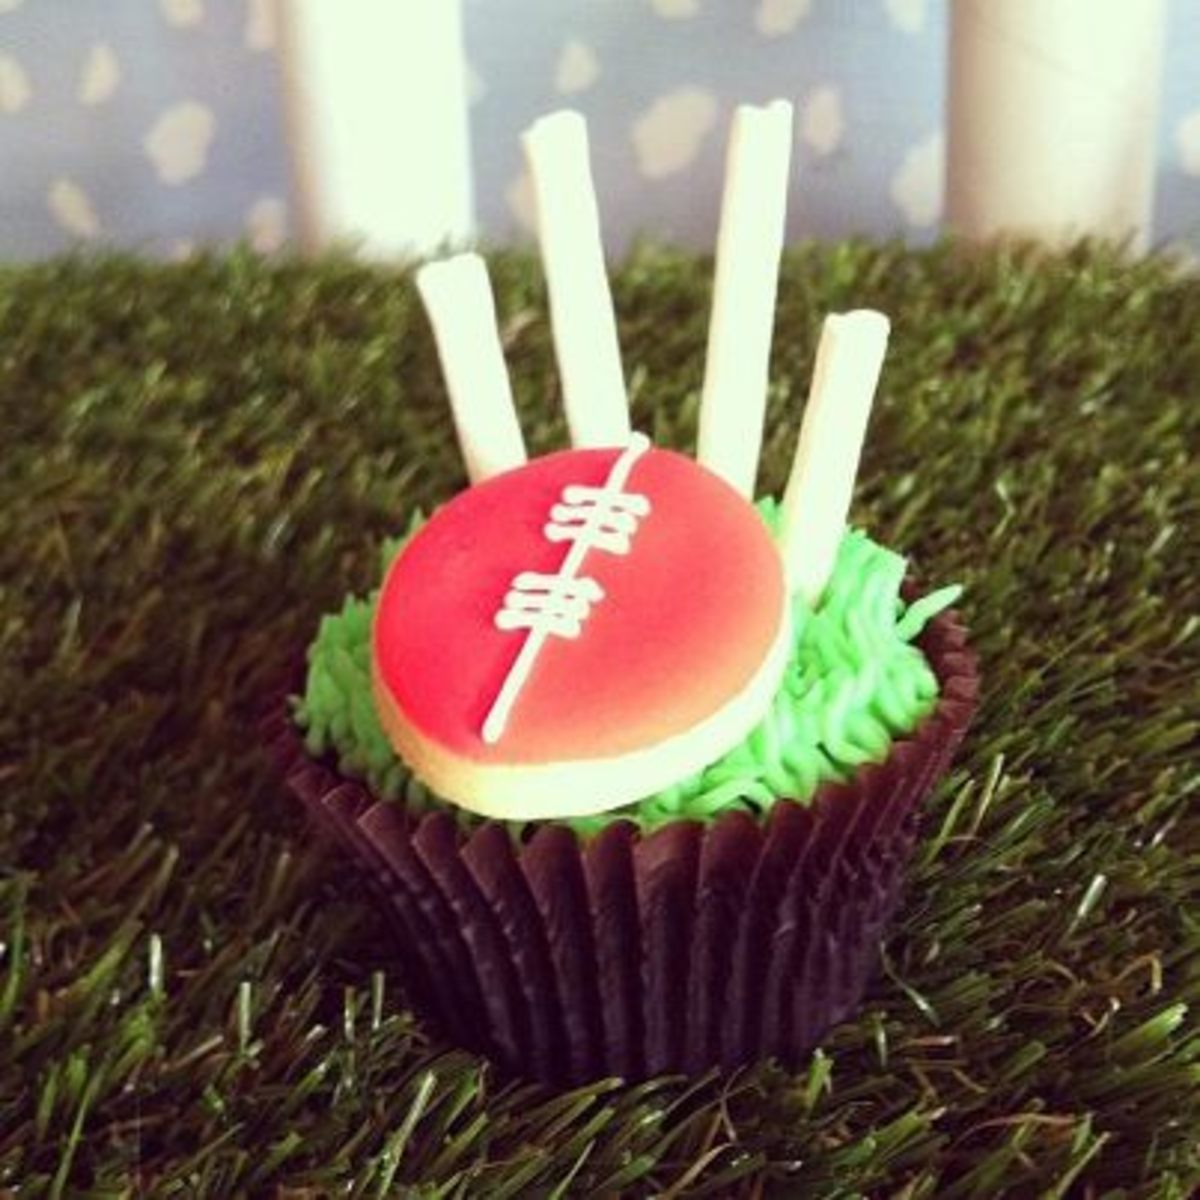 Goal posts and ball cupcakes